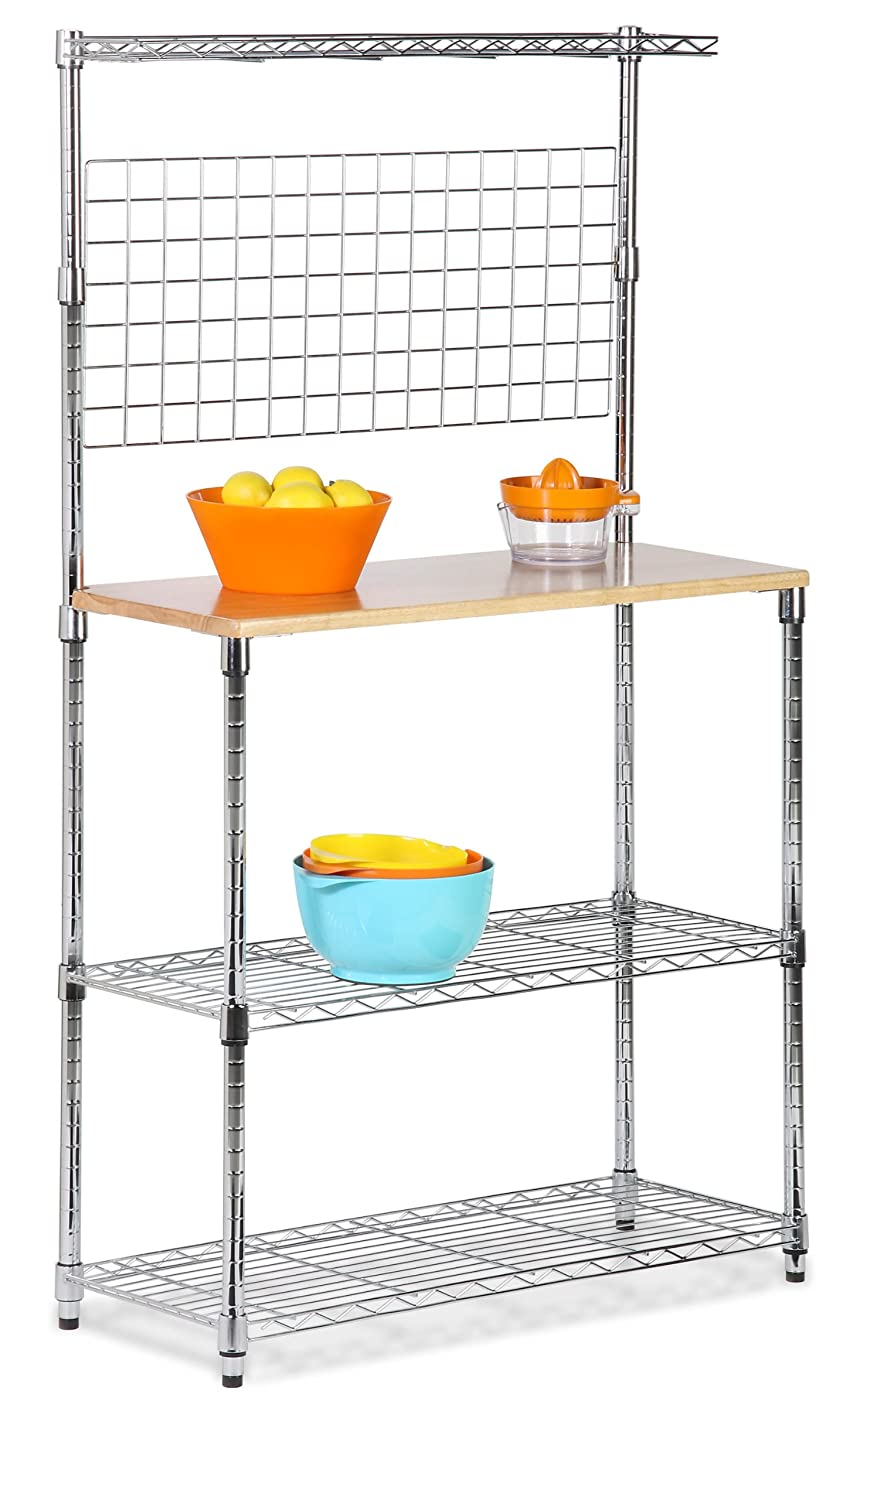 stands asp image baker in rack kitchen cookware bakers